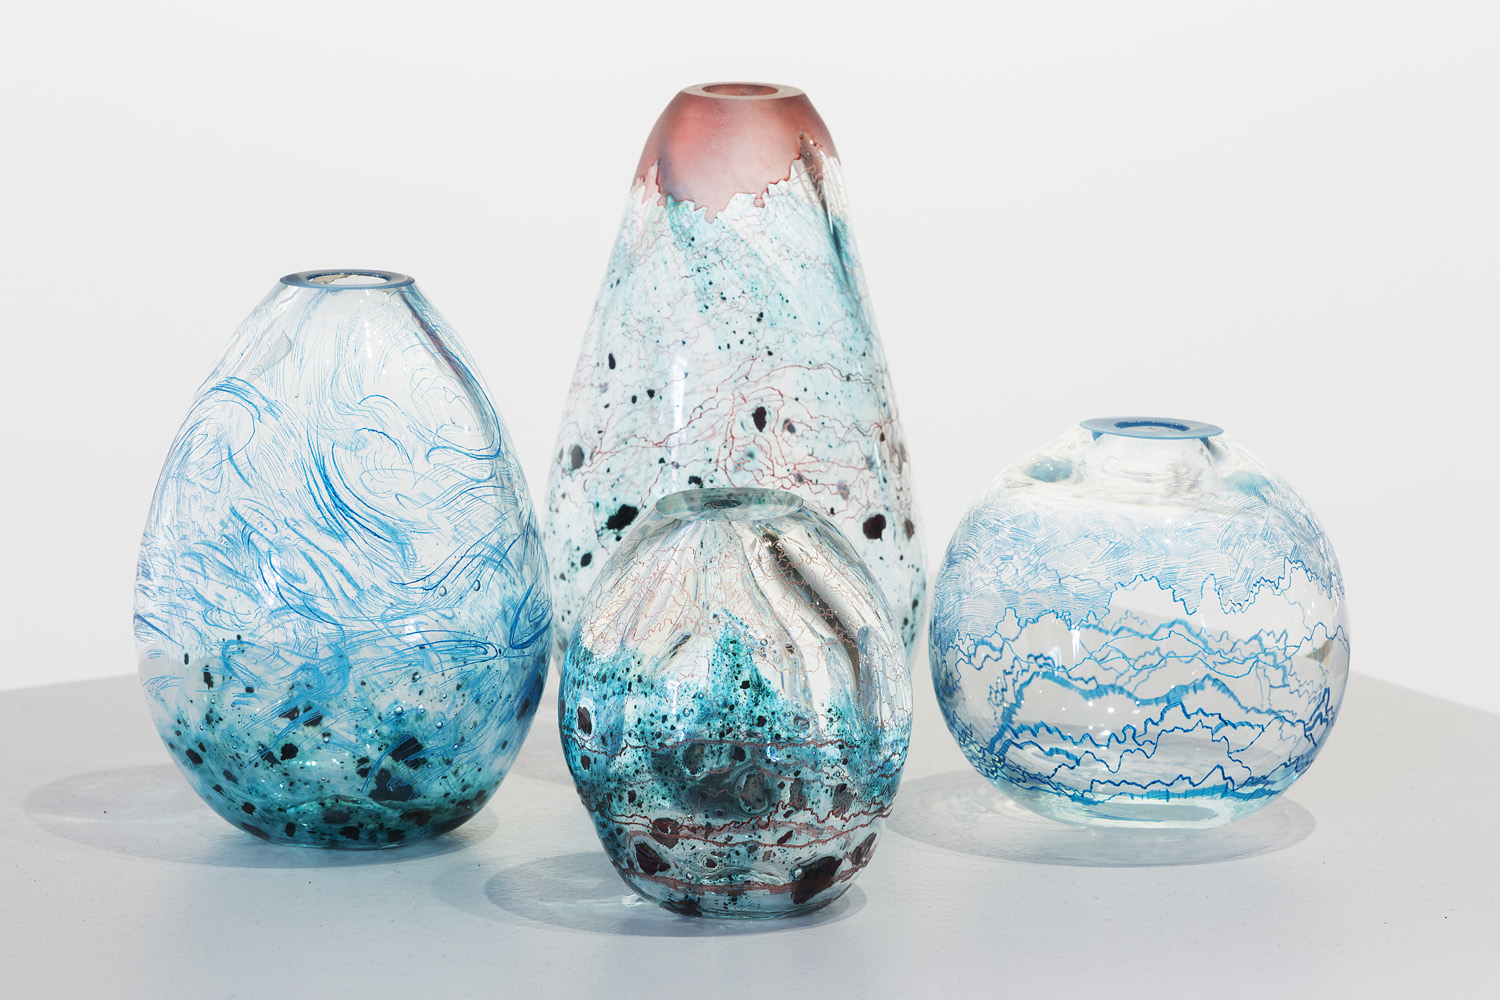 Annika Romeyn, Fluid, Sediment and Contour Vessels, blown and engraved glass with copper inclusions and oil paint, 2014 (photo by Adam McGrath), Canberra Glassworks GLINT exhibition install